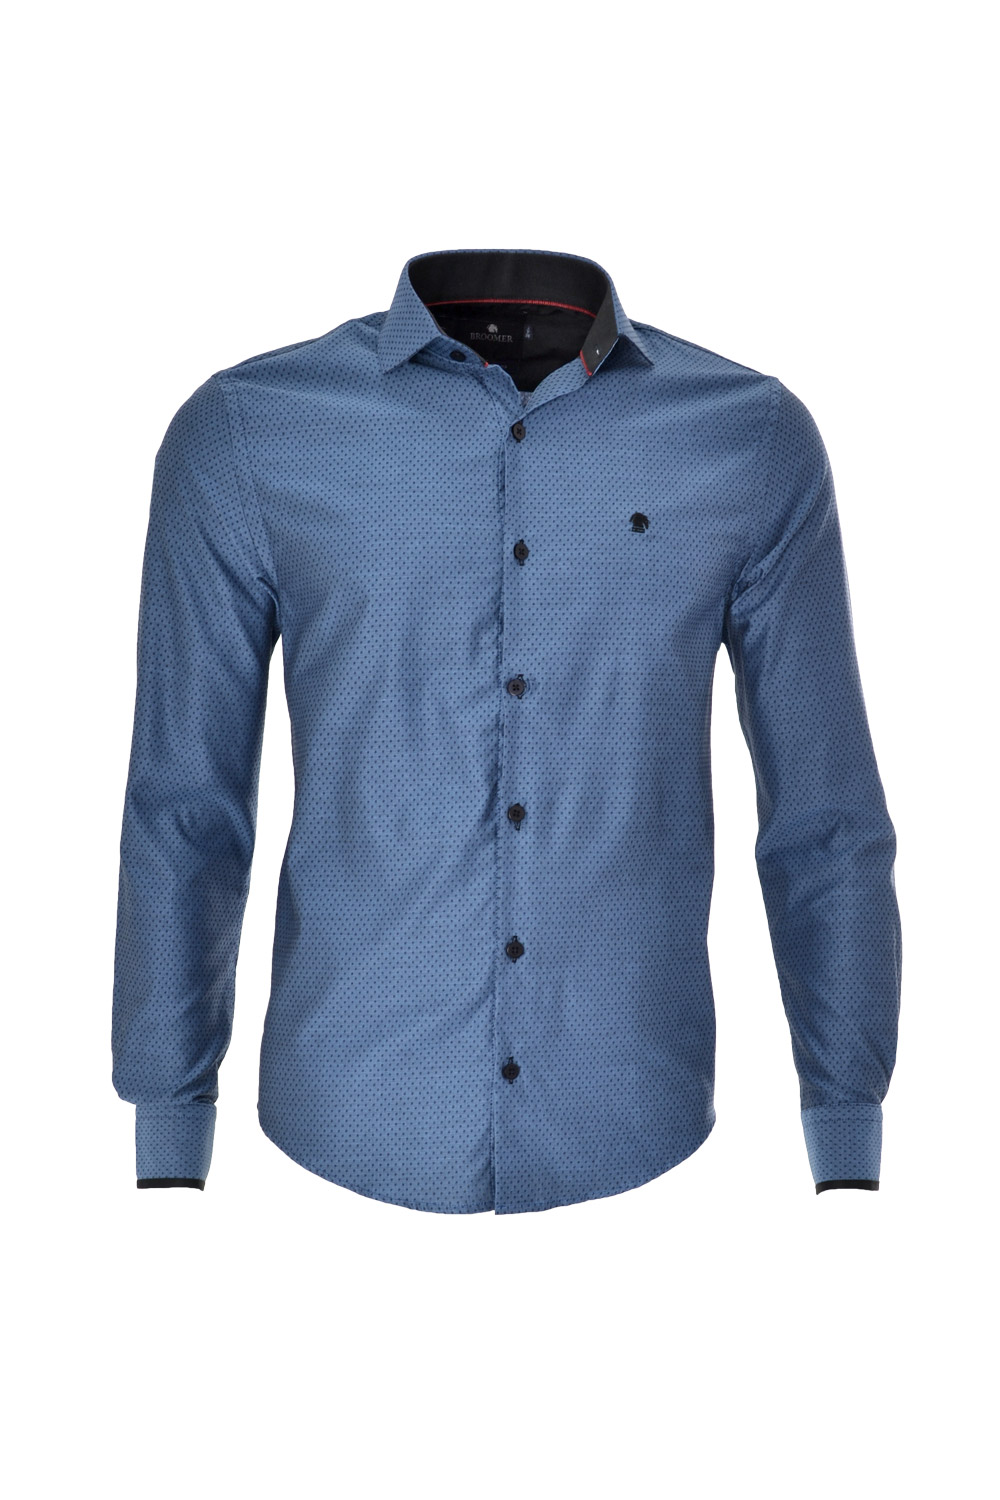 CAMISA ML FASHION SUPER SLIM ALGODAO FIO TINTO MAQUINETADA AZUL MEDIO